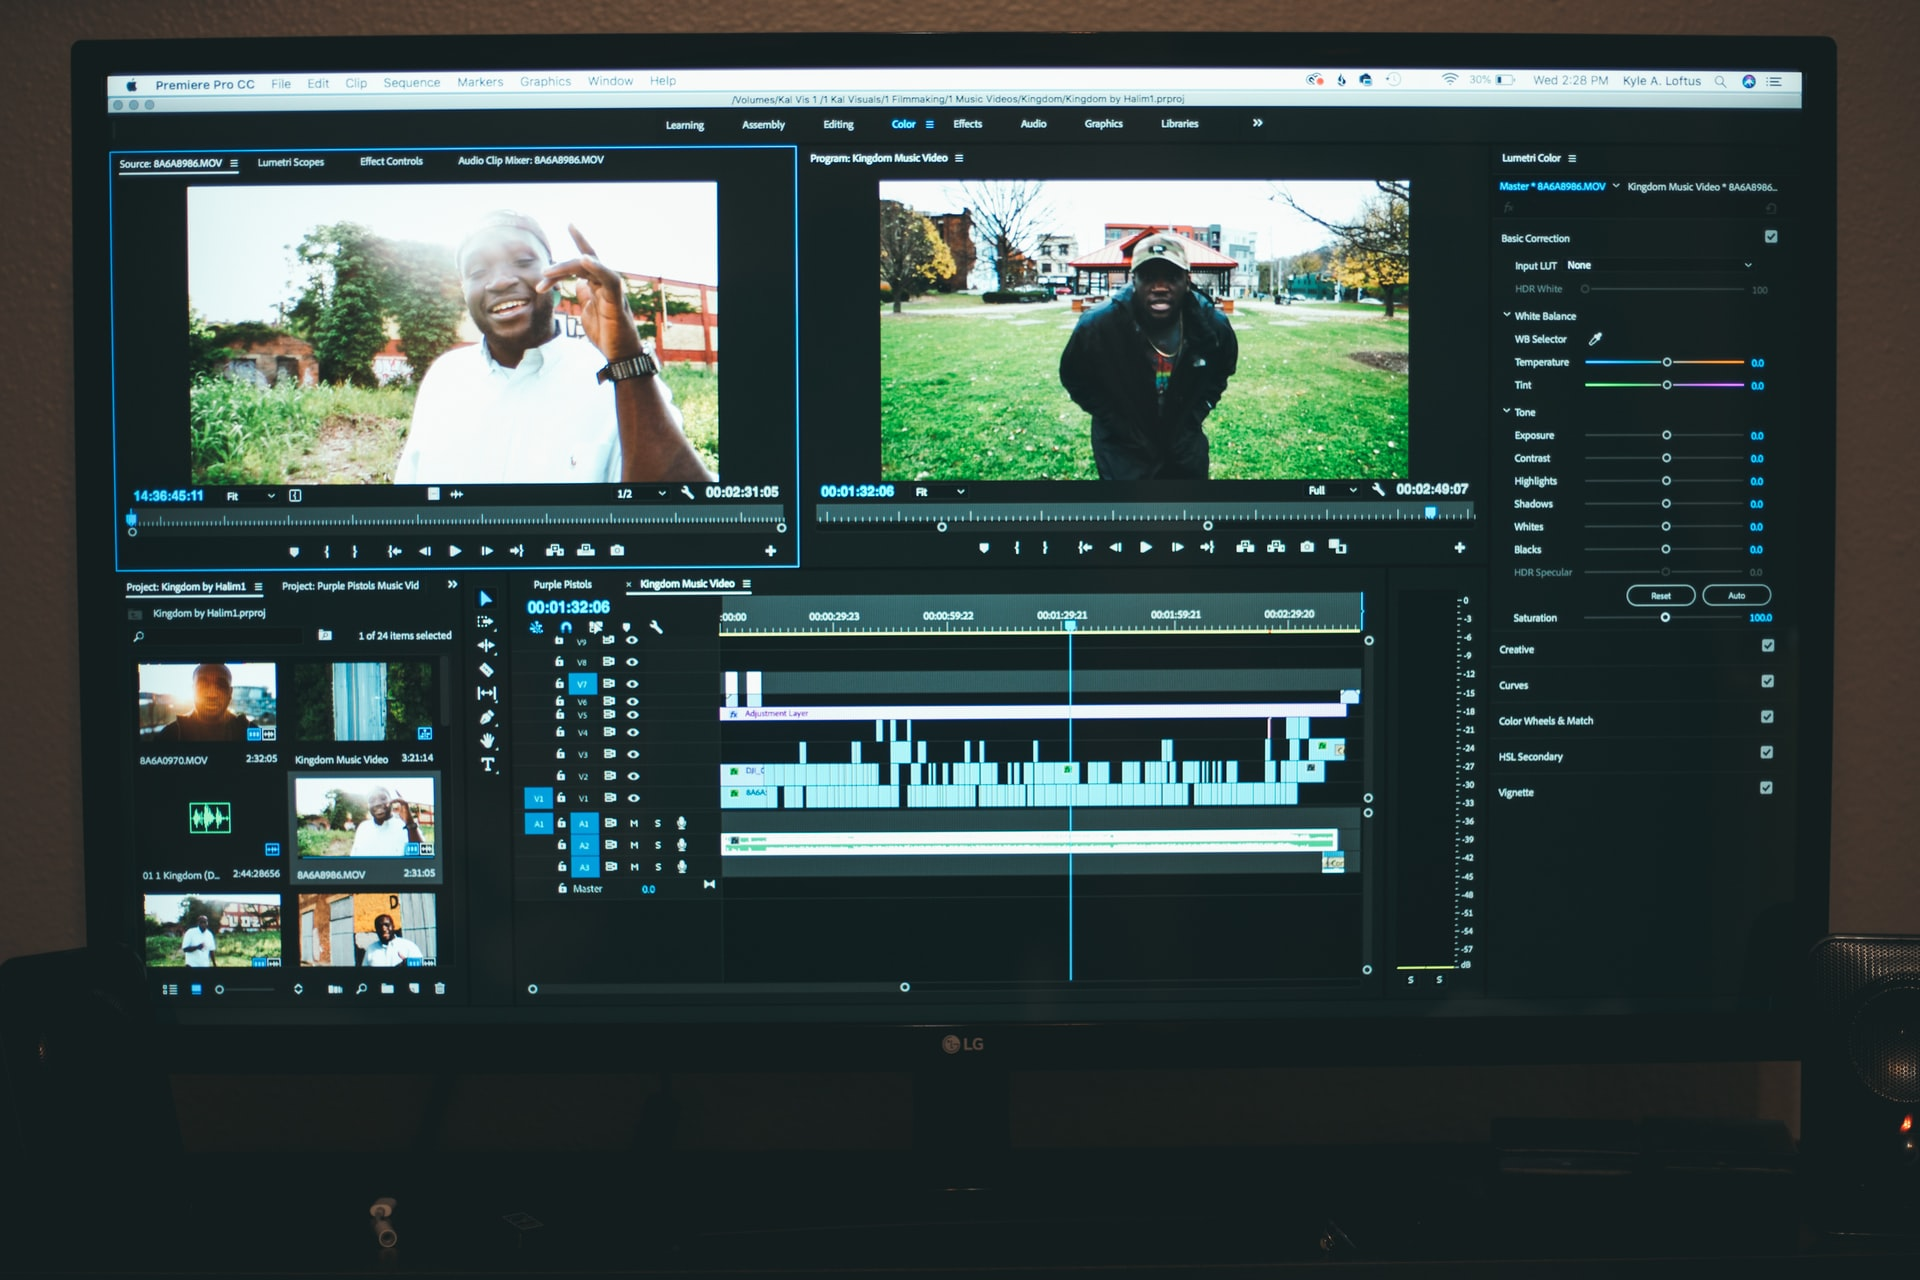 A screenshot of a video editor working on Adobe Premier Pro CC